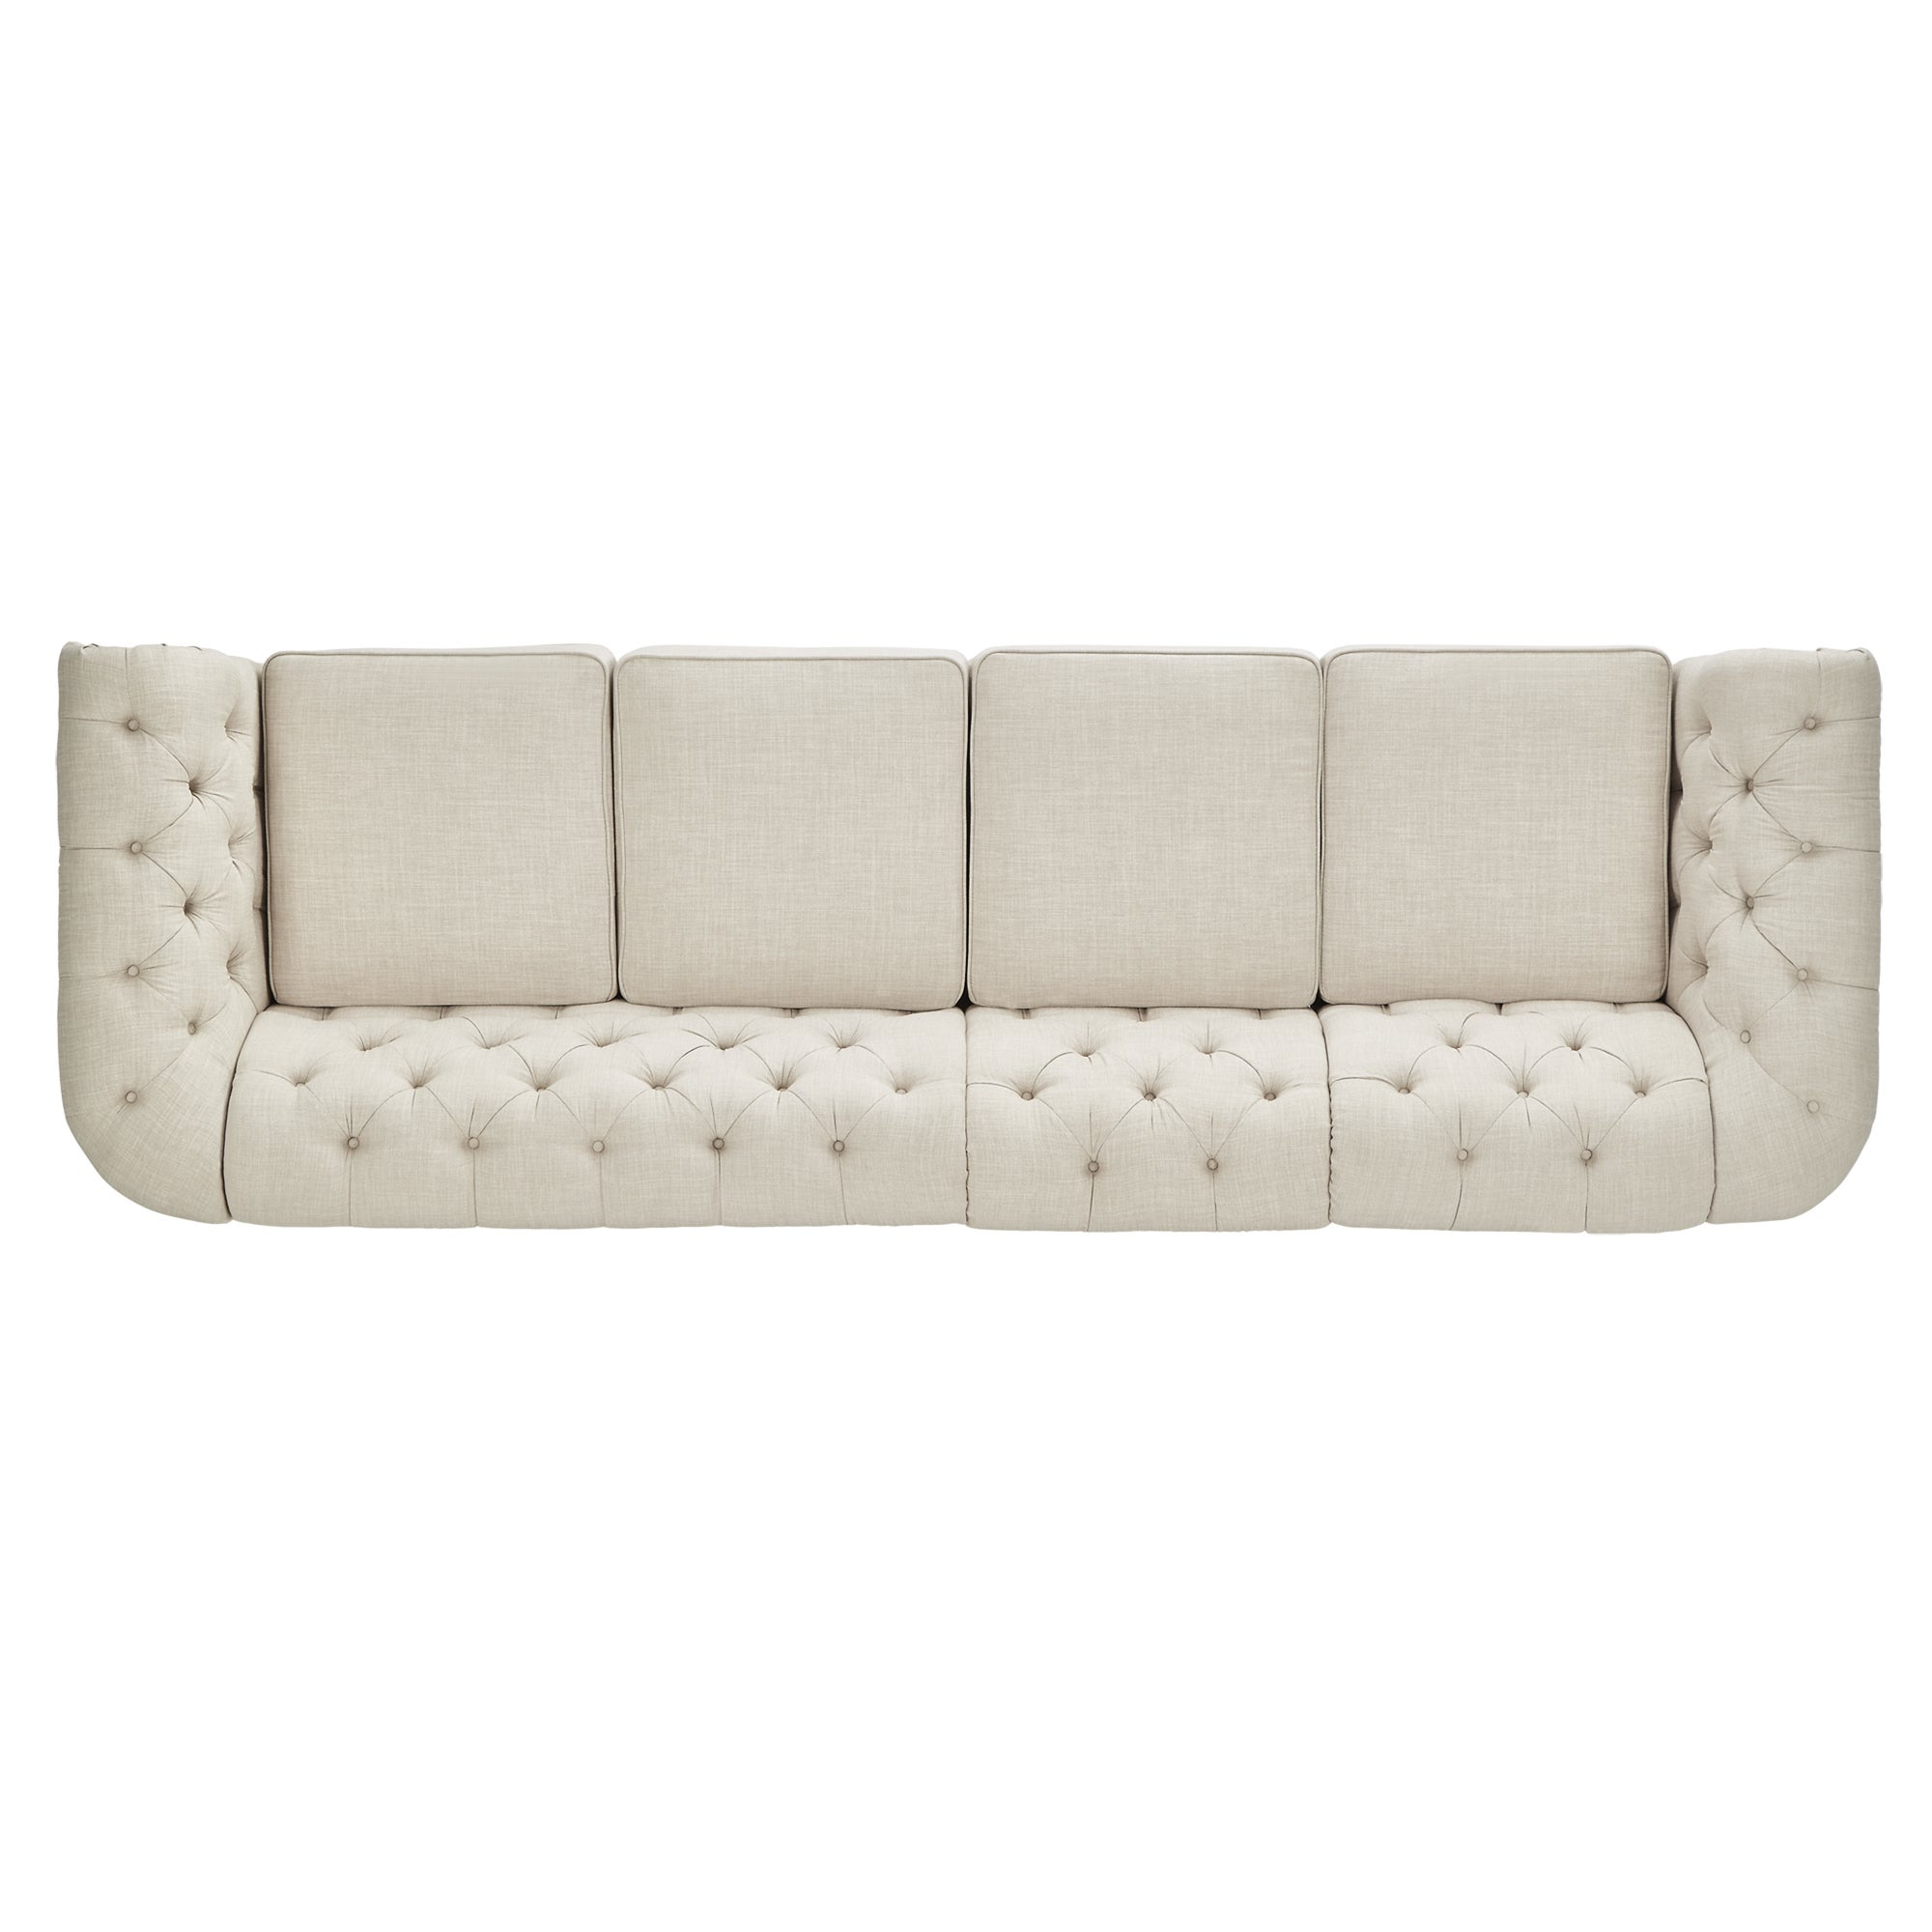 com with long contrast walmart grey futons mainstays ip white piping futon extra large